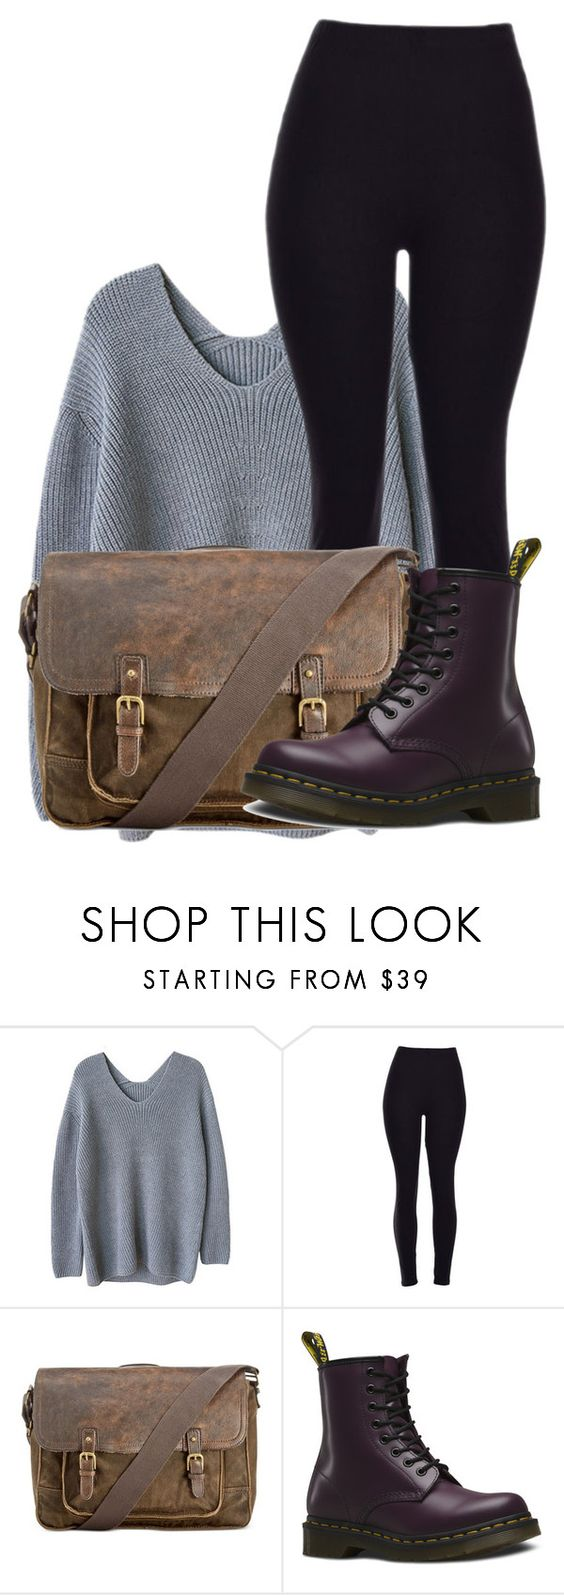 """""""100 Day Challenge: Day 32: Going to a Library"""" by hagel ❤ liked on Polyvore featuring Patricia Nash, Dr. Martens, women's clothing, women's fashion, women, female, woman, misses and juniors"""